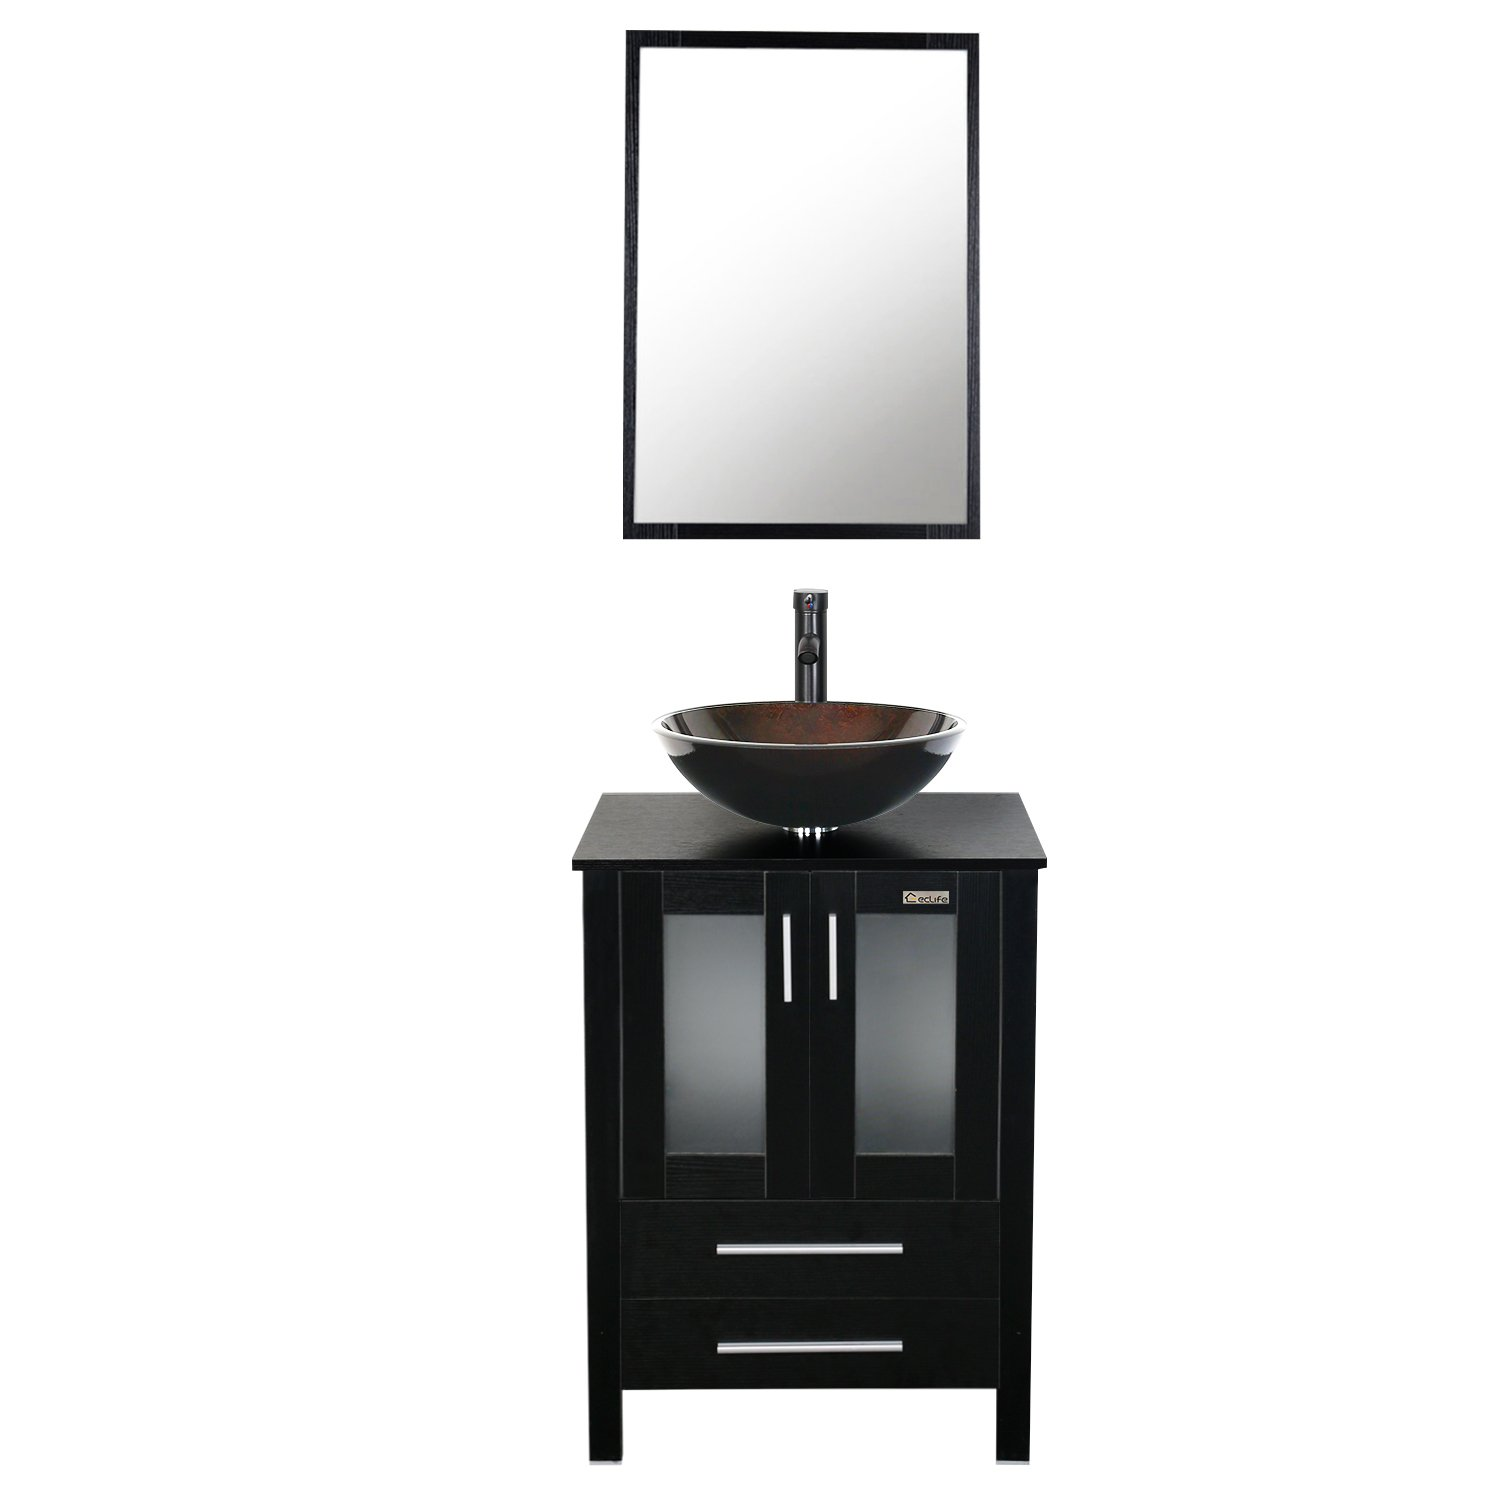 Eclife 24 Inch Bathroom Vanity Combo Modern MDF Cabinet With Vanity Mirror  Tempered Glass Counter Top